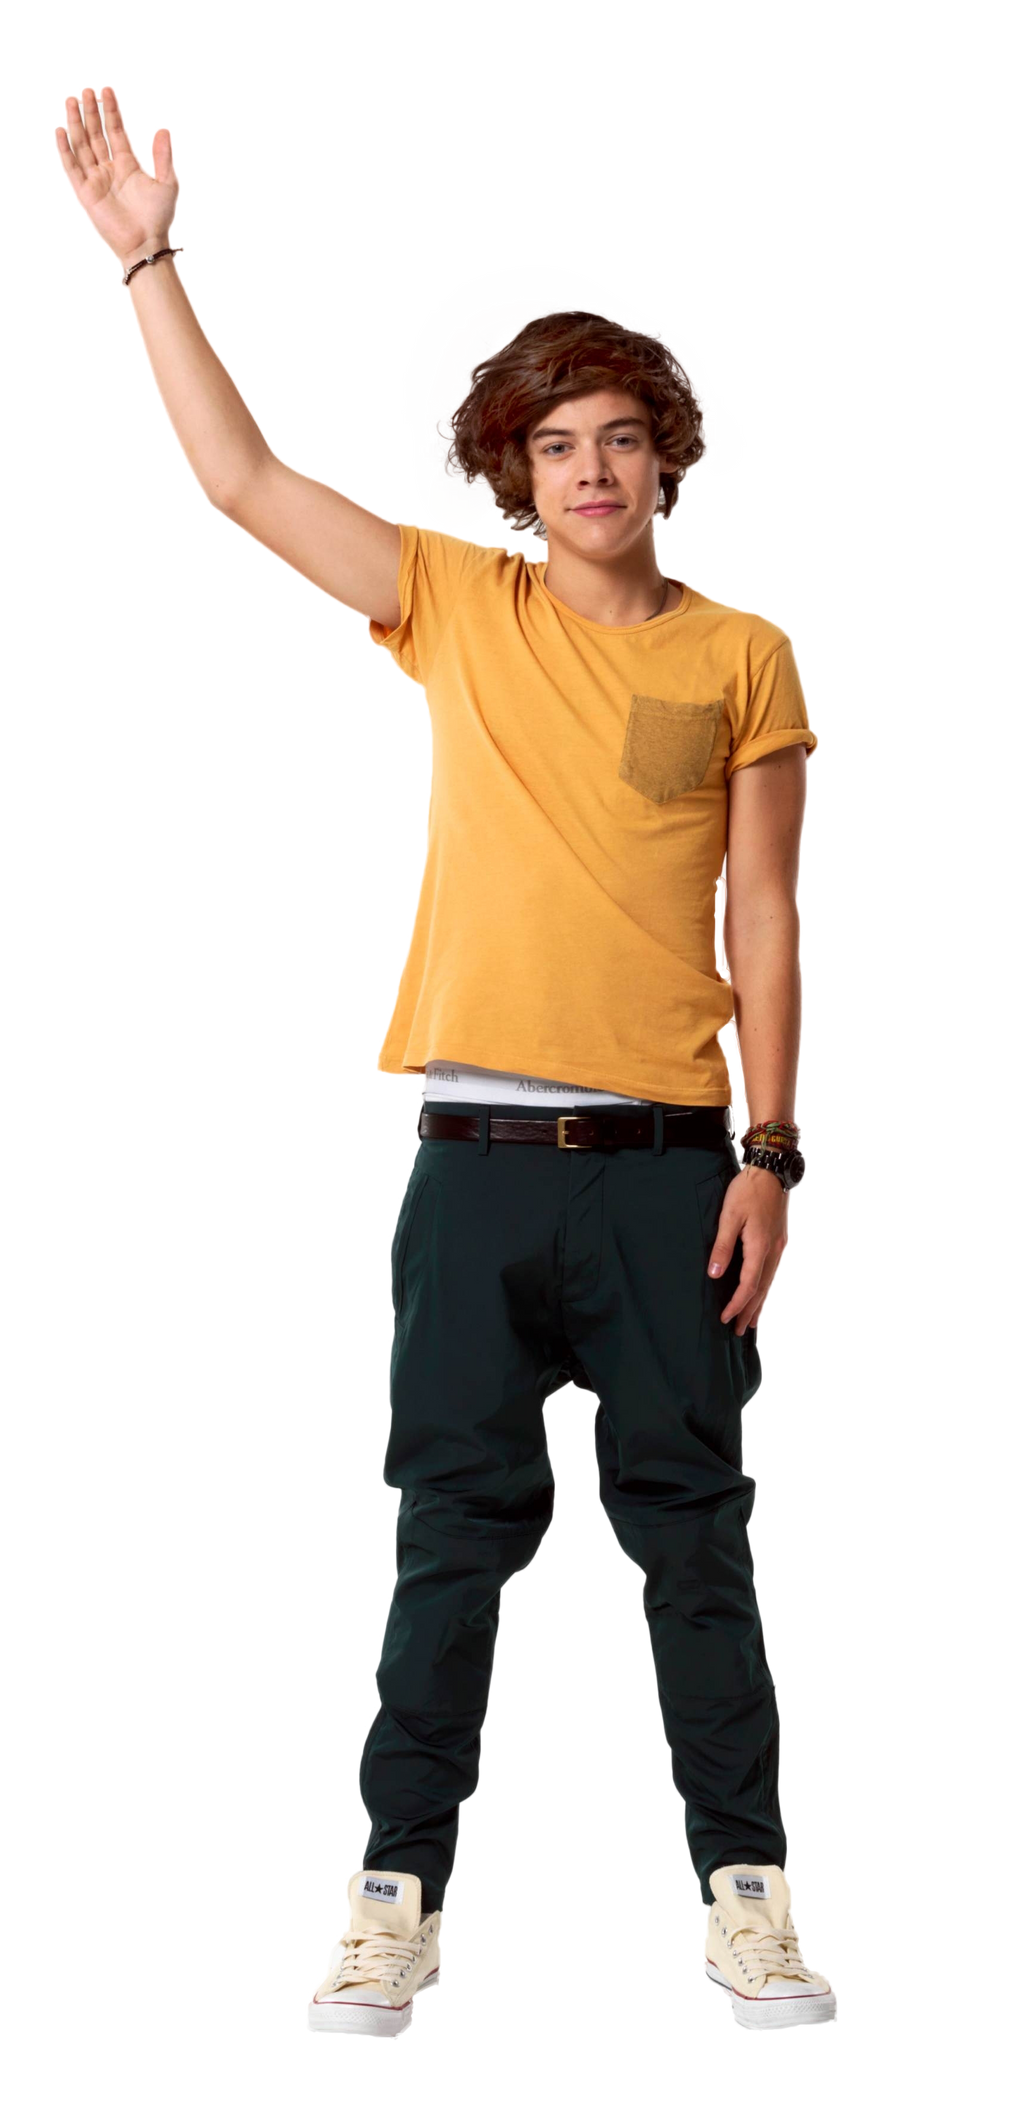 Harry Styles Png #6 by tectos on DeviantArt